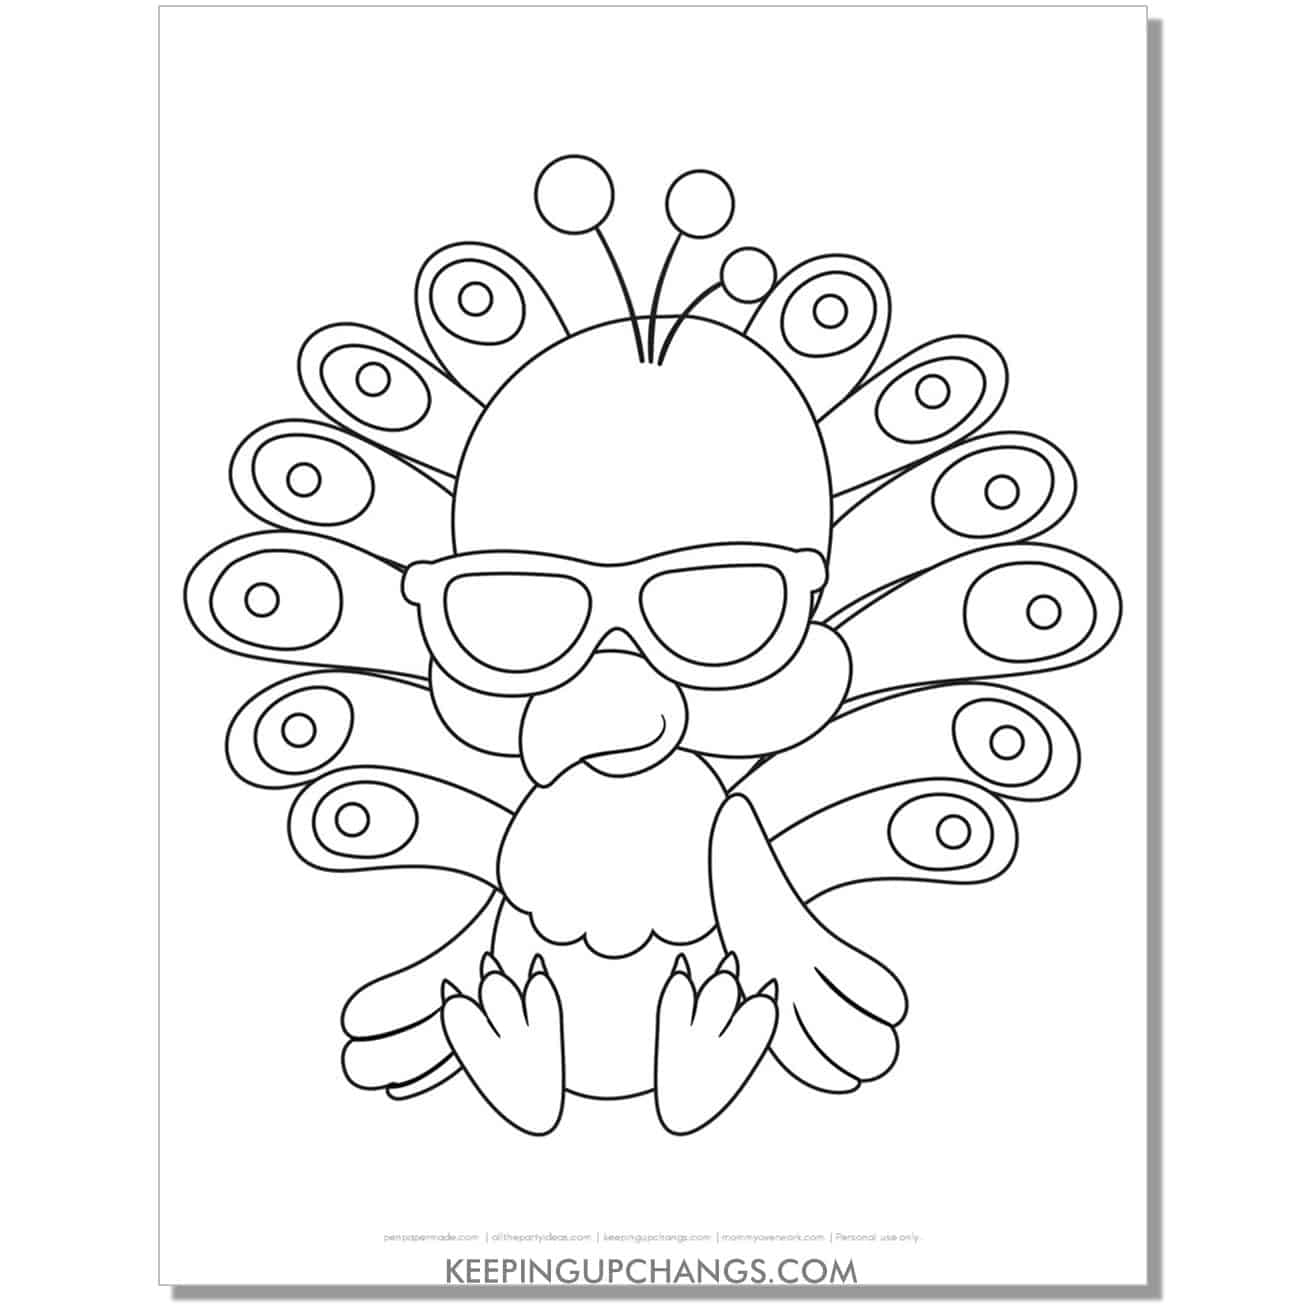 chibi baby peacock with sunglasses coloring page.